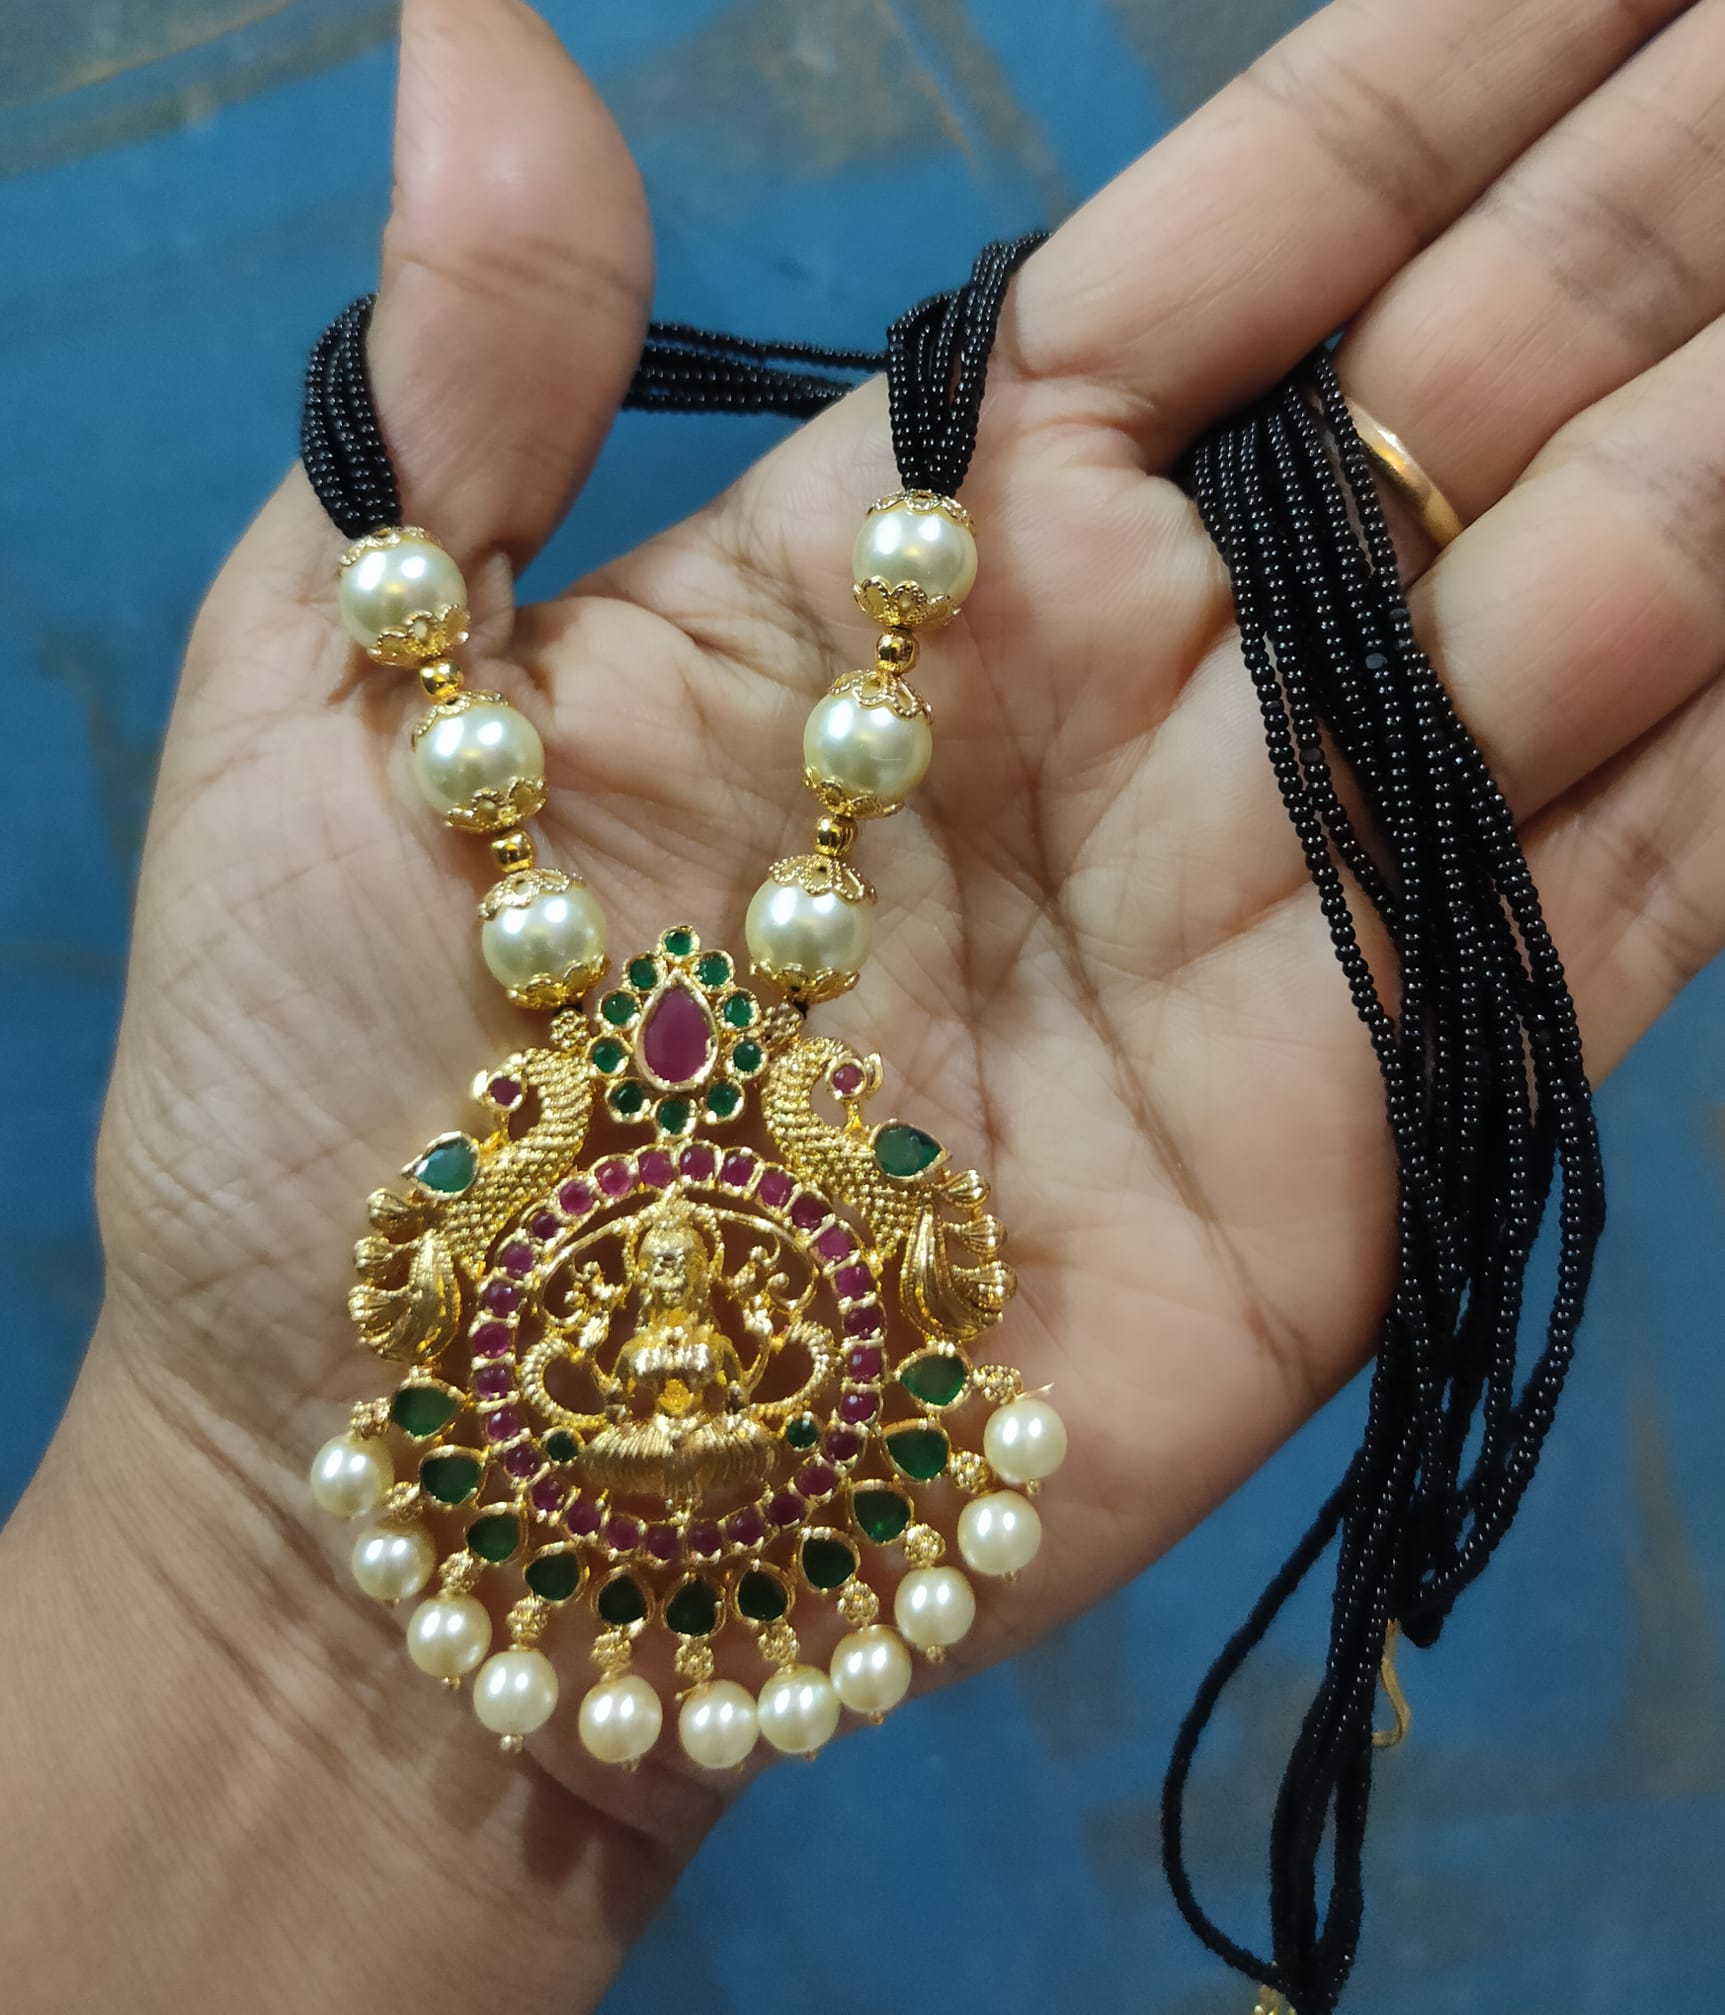 Beautiful one gram gold black bead chain with Lakshmi devi pendant. 1 gram gold mix jewellery 1 gram gold jewellery online shopping cash on delivery one gram temple jewellery